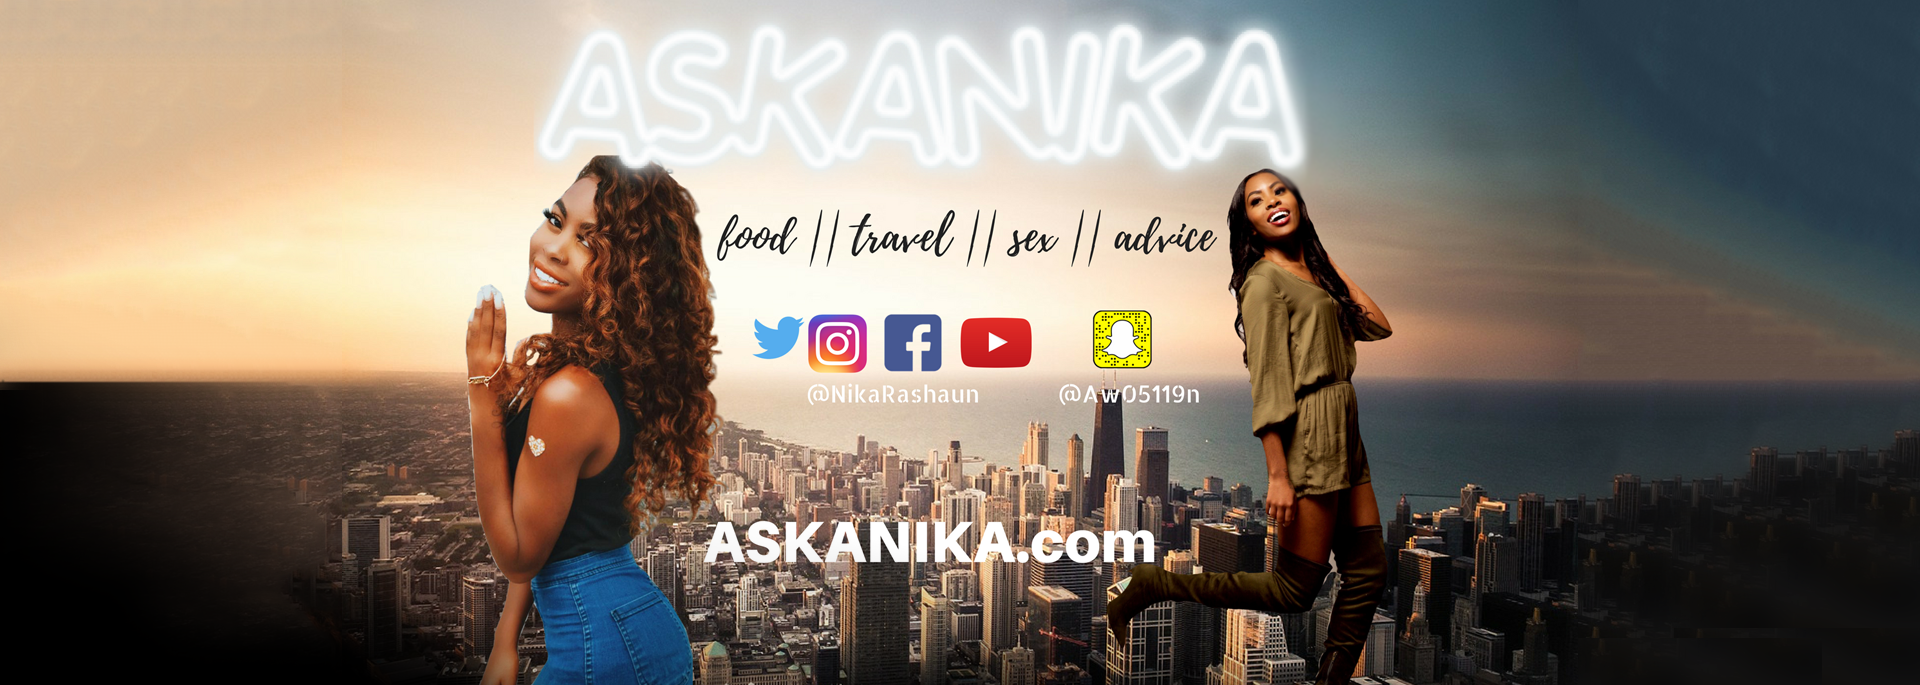 AskAnika channel